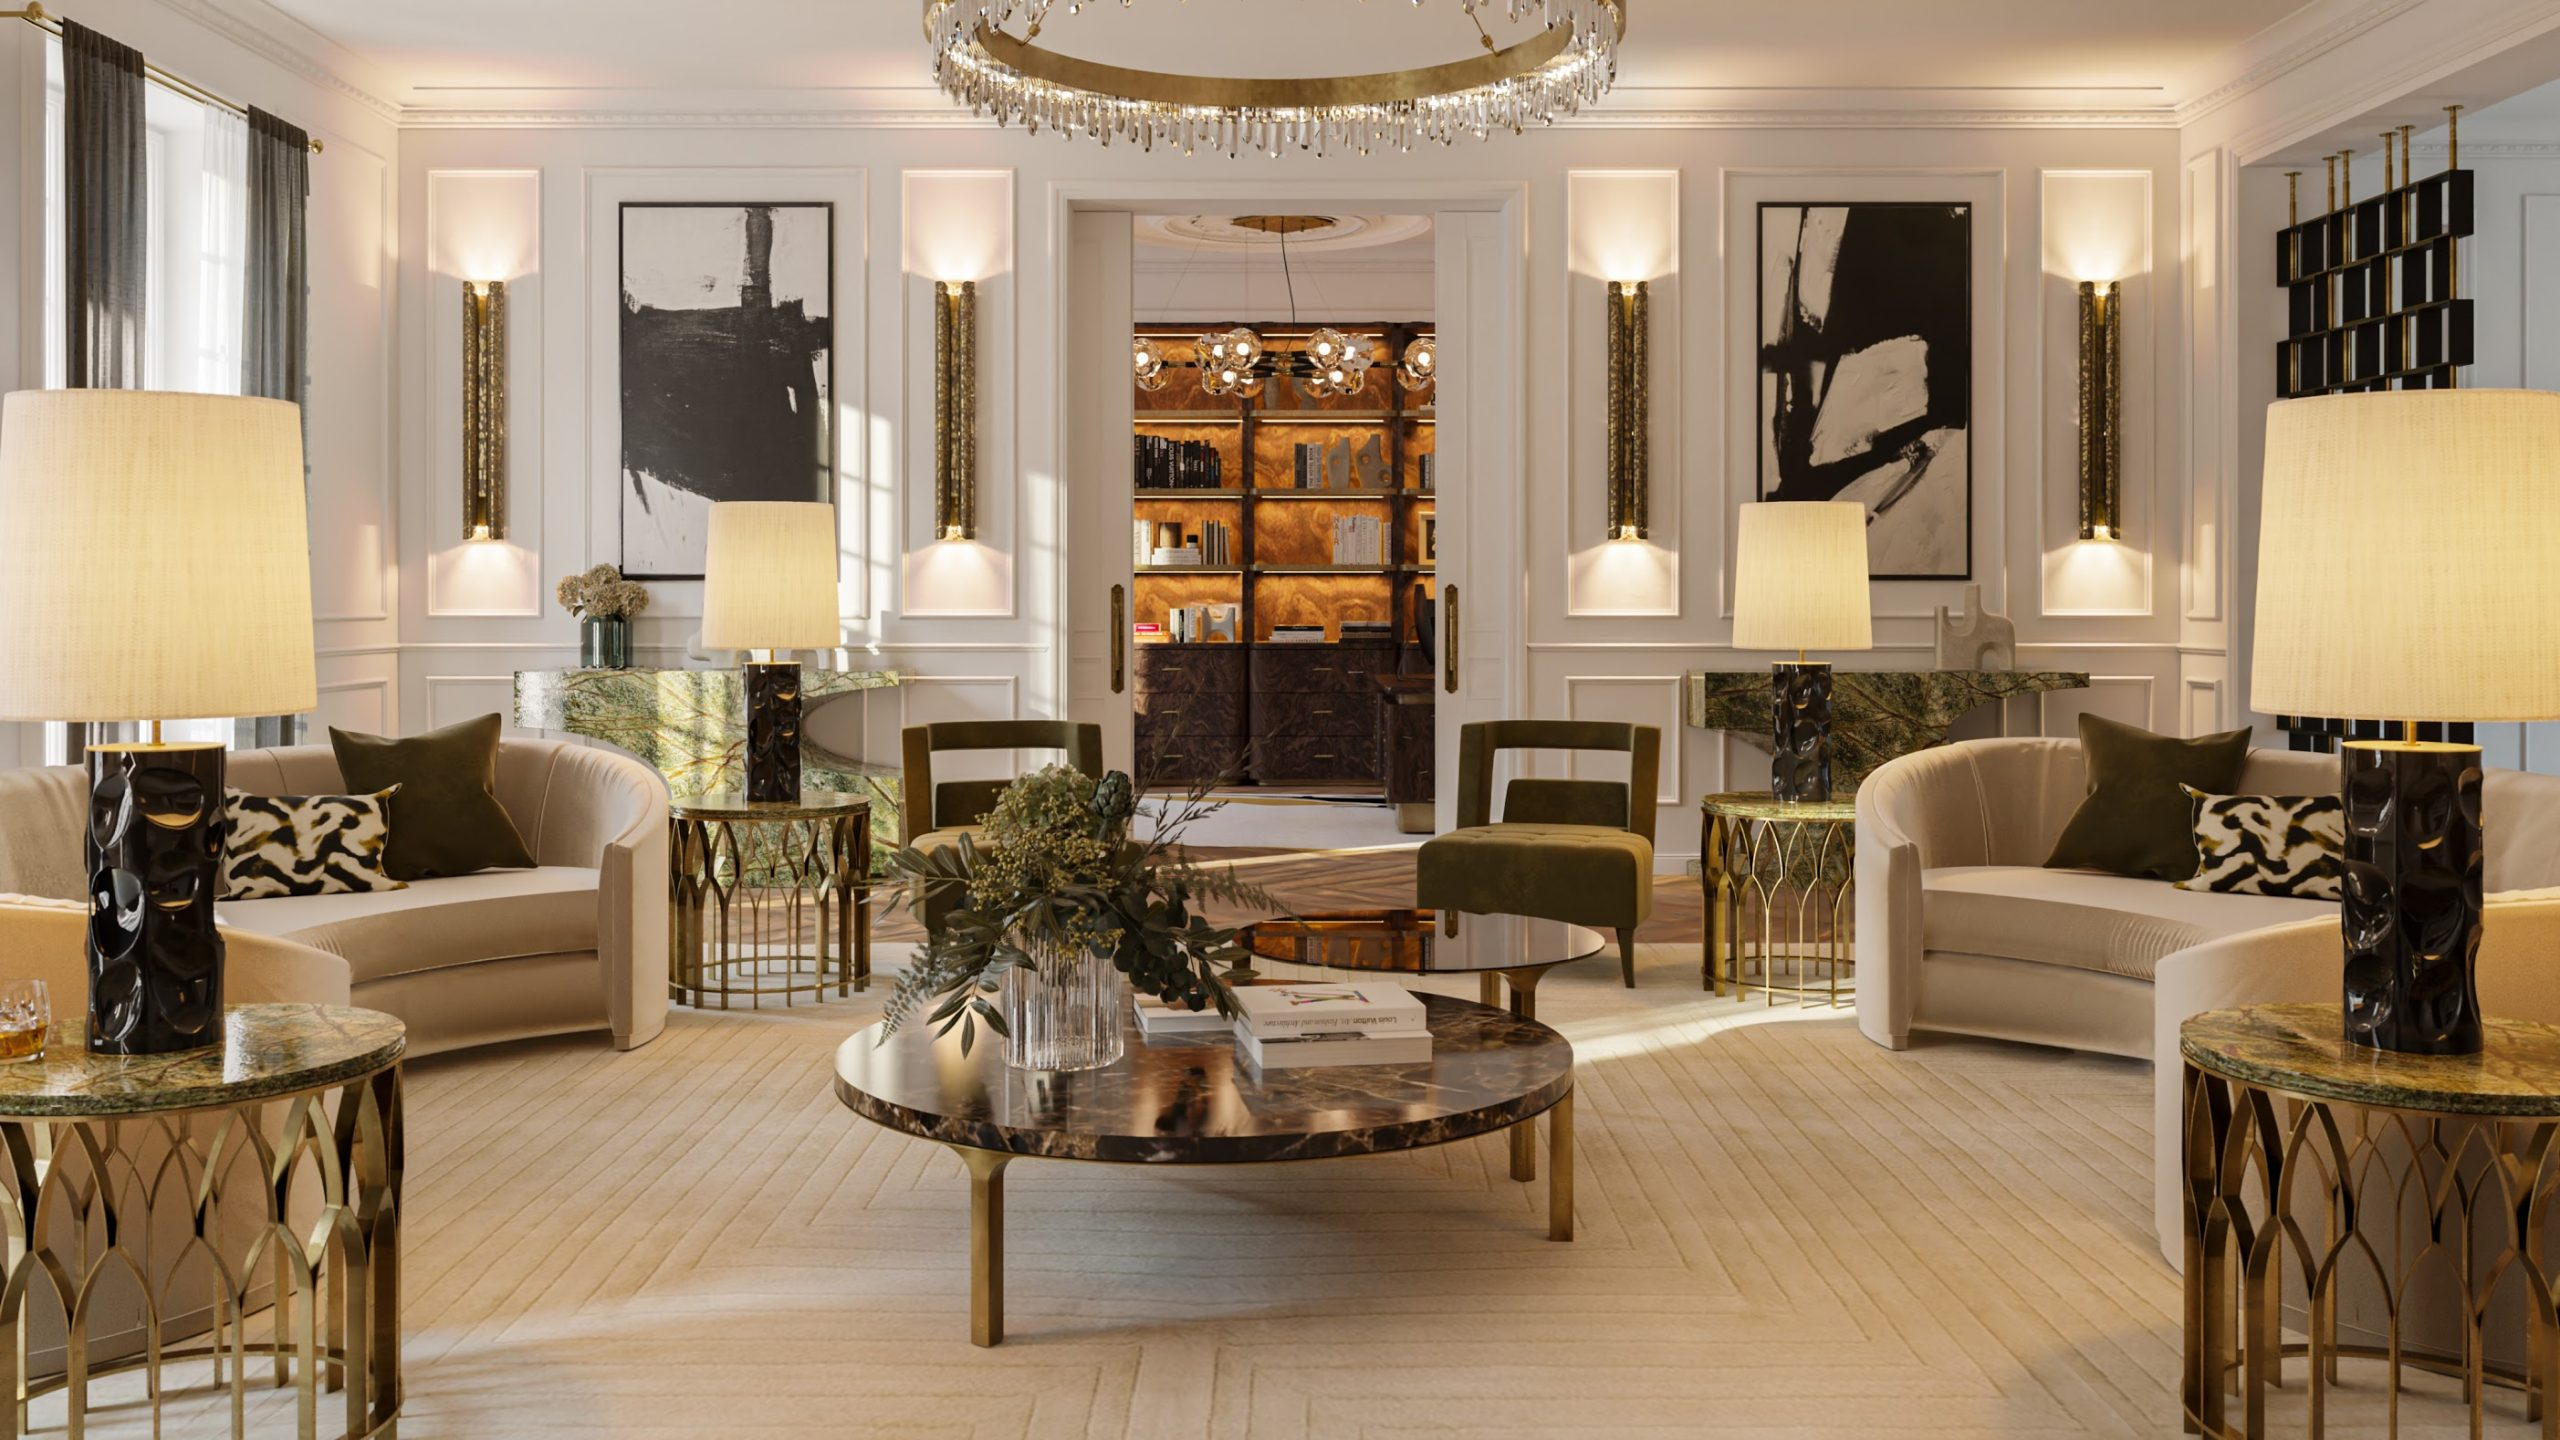 """Contemporary Classic Living Room: Uncover The Oasis Of The """"Éternel"""" Apartment contemporary classic living room Contemporary Classic Living Room: Uncover The Oasis Of The """"Éternel"""" Apartment Contemporary Classic Living Room Uncover The Oasis Of The E  ternel Apartment scaled"""